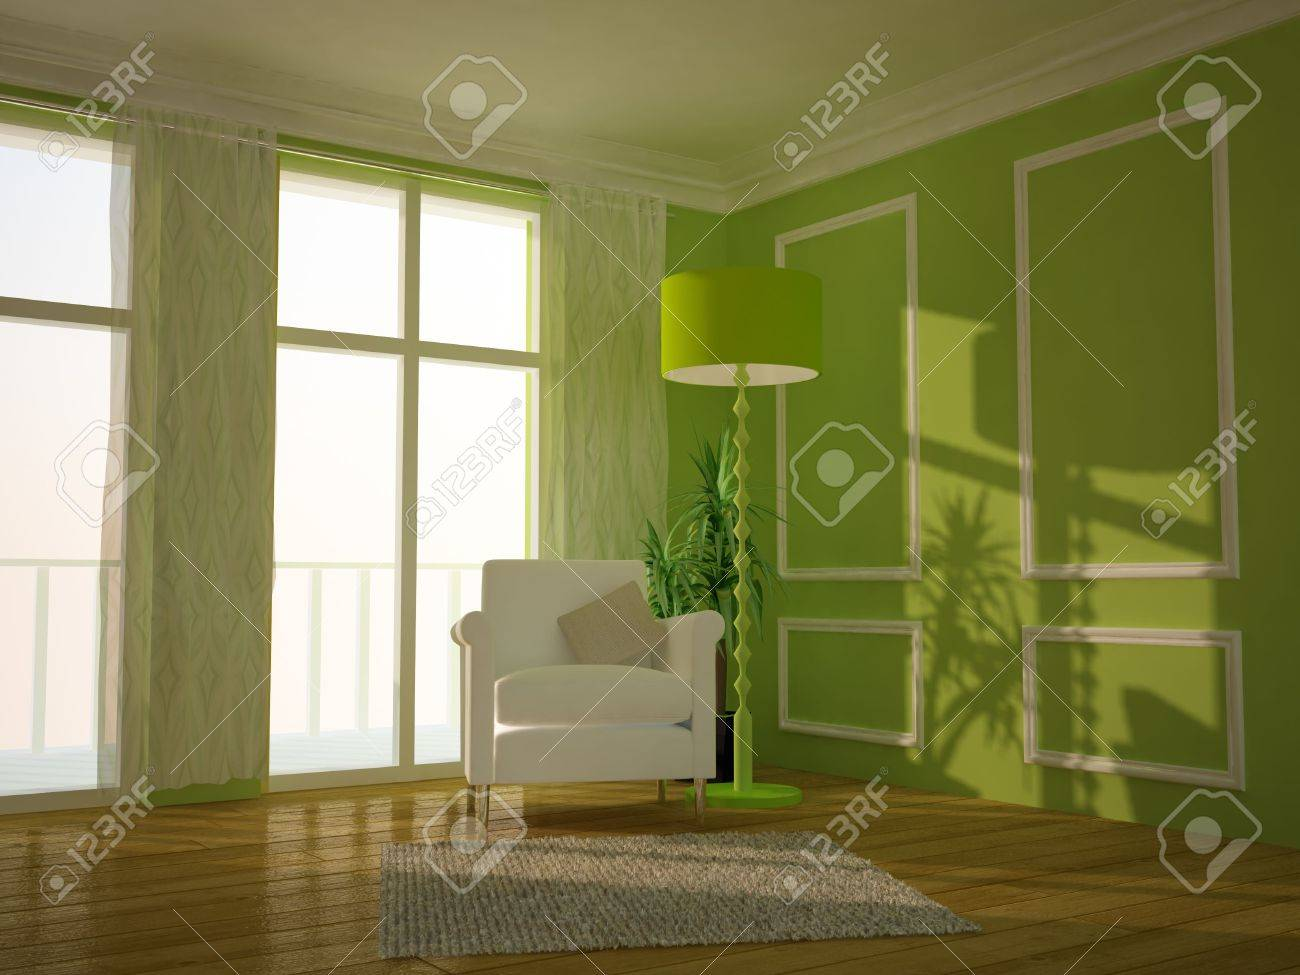 Modern Lounge Room Painted Green Stock Photo, Picture And Royalty ...